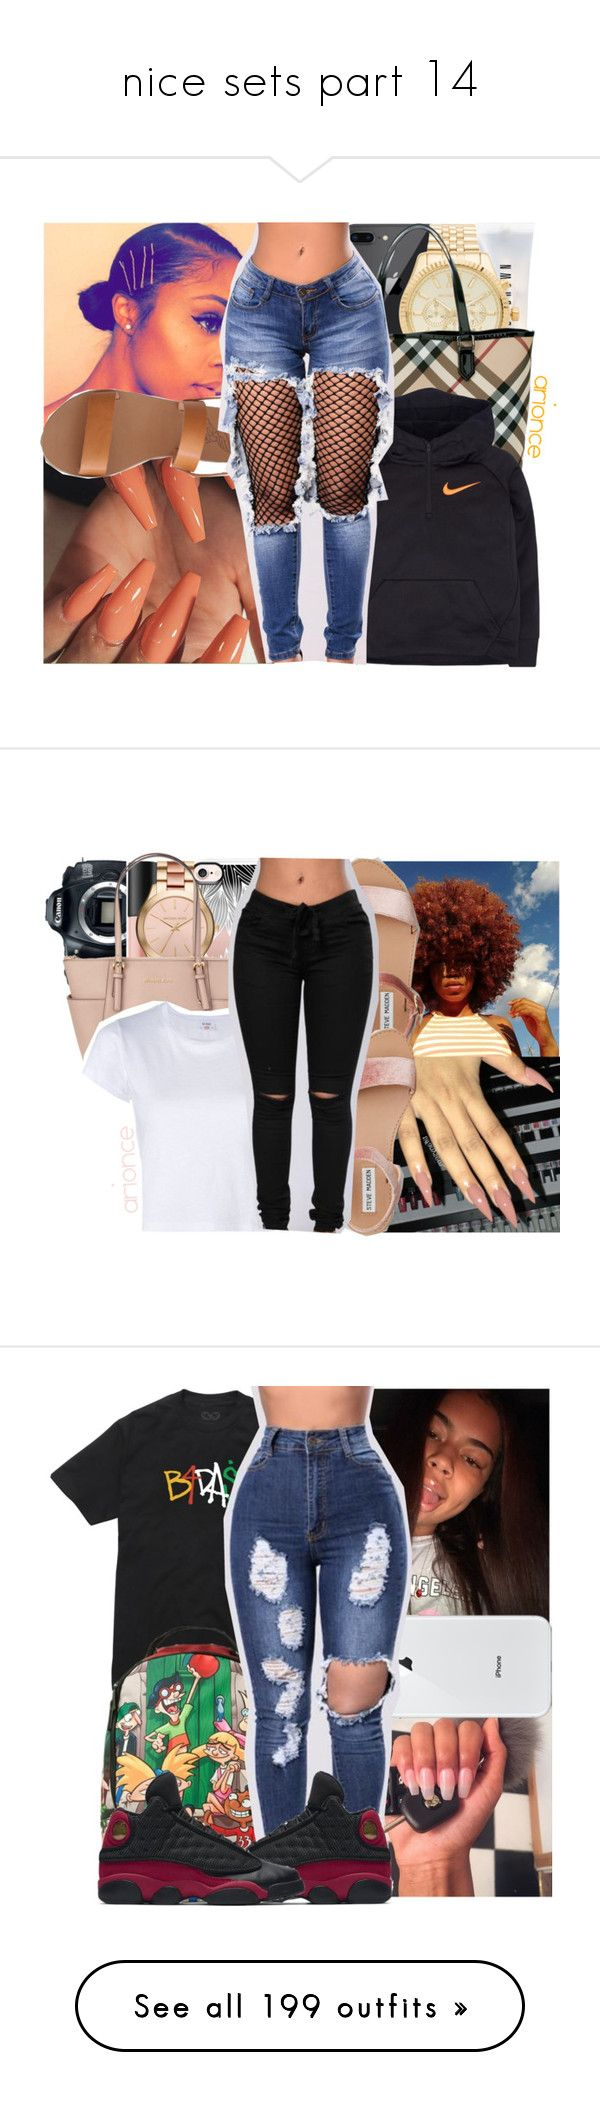 """""""nice sets part 14"""" by danny-baby ❤ liked on Polyvore featuring Bobbi Brown Cosmetics, Michael Kors, Burberry, NIKE, Ancient Greek Sandals, Casetify, Eos, Bare Escentuals, MICHAEL Michael Kors and RE/DONE"""